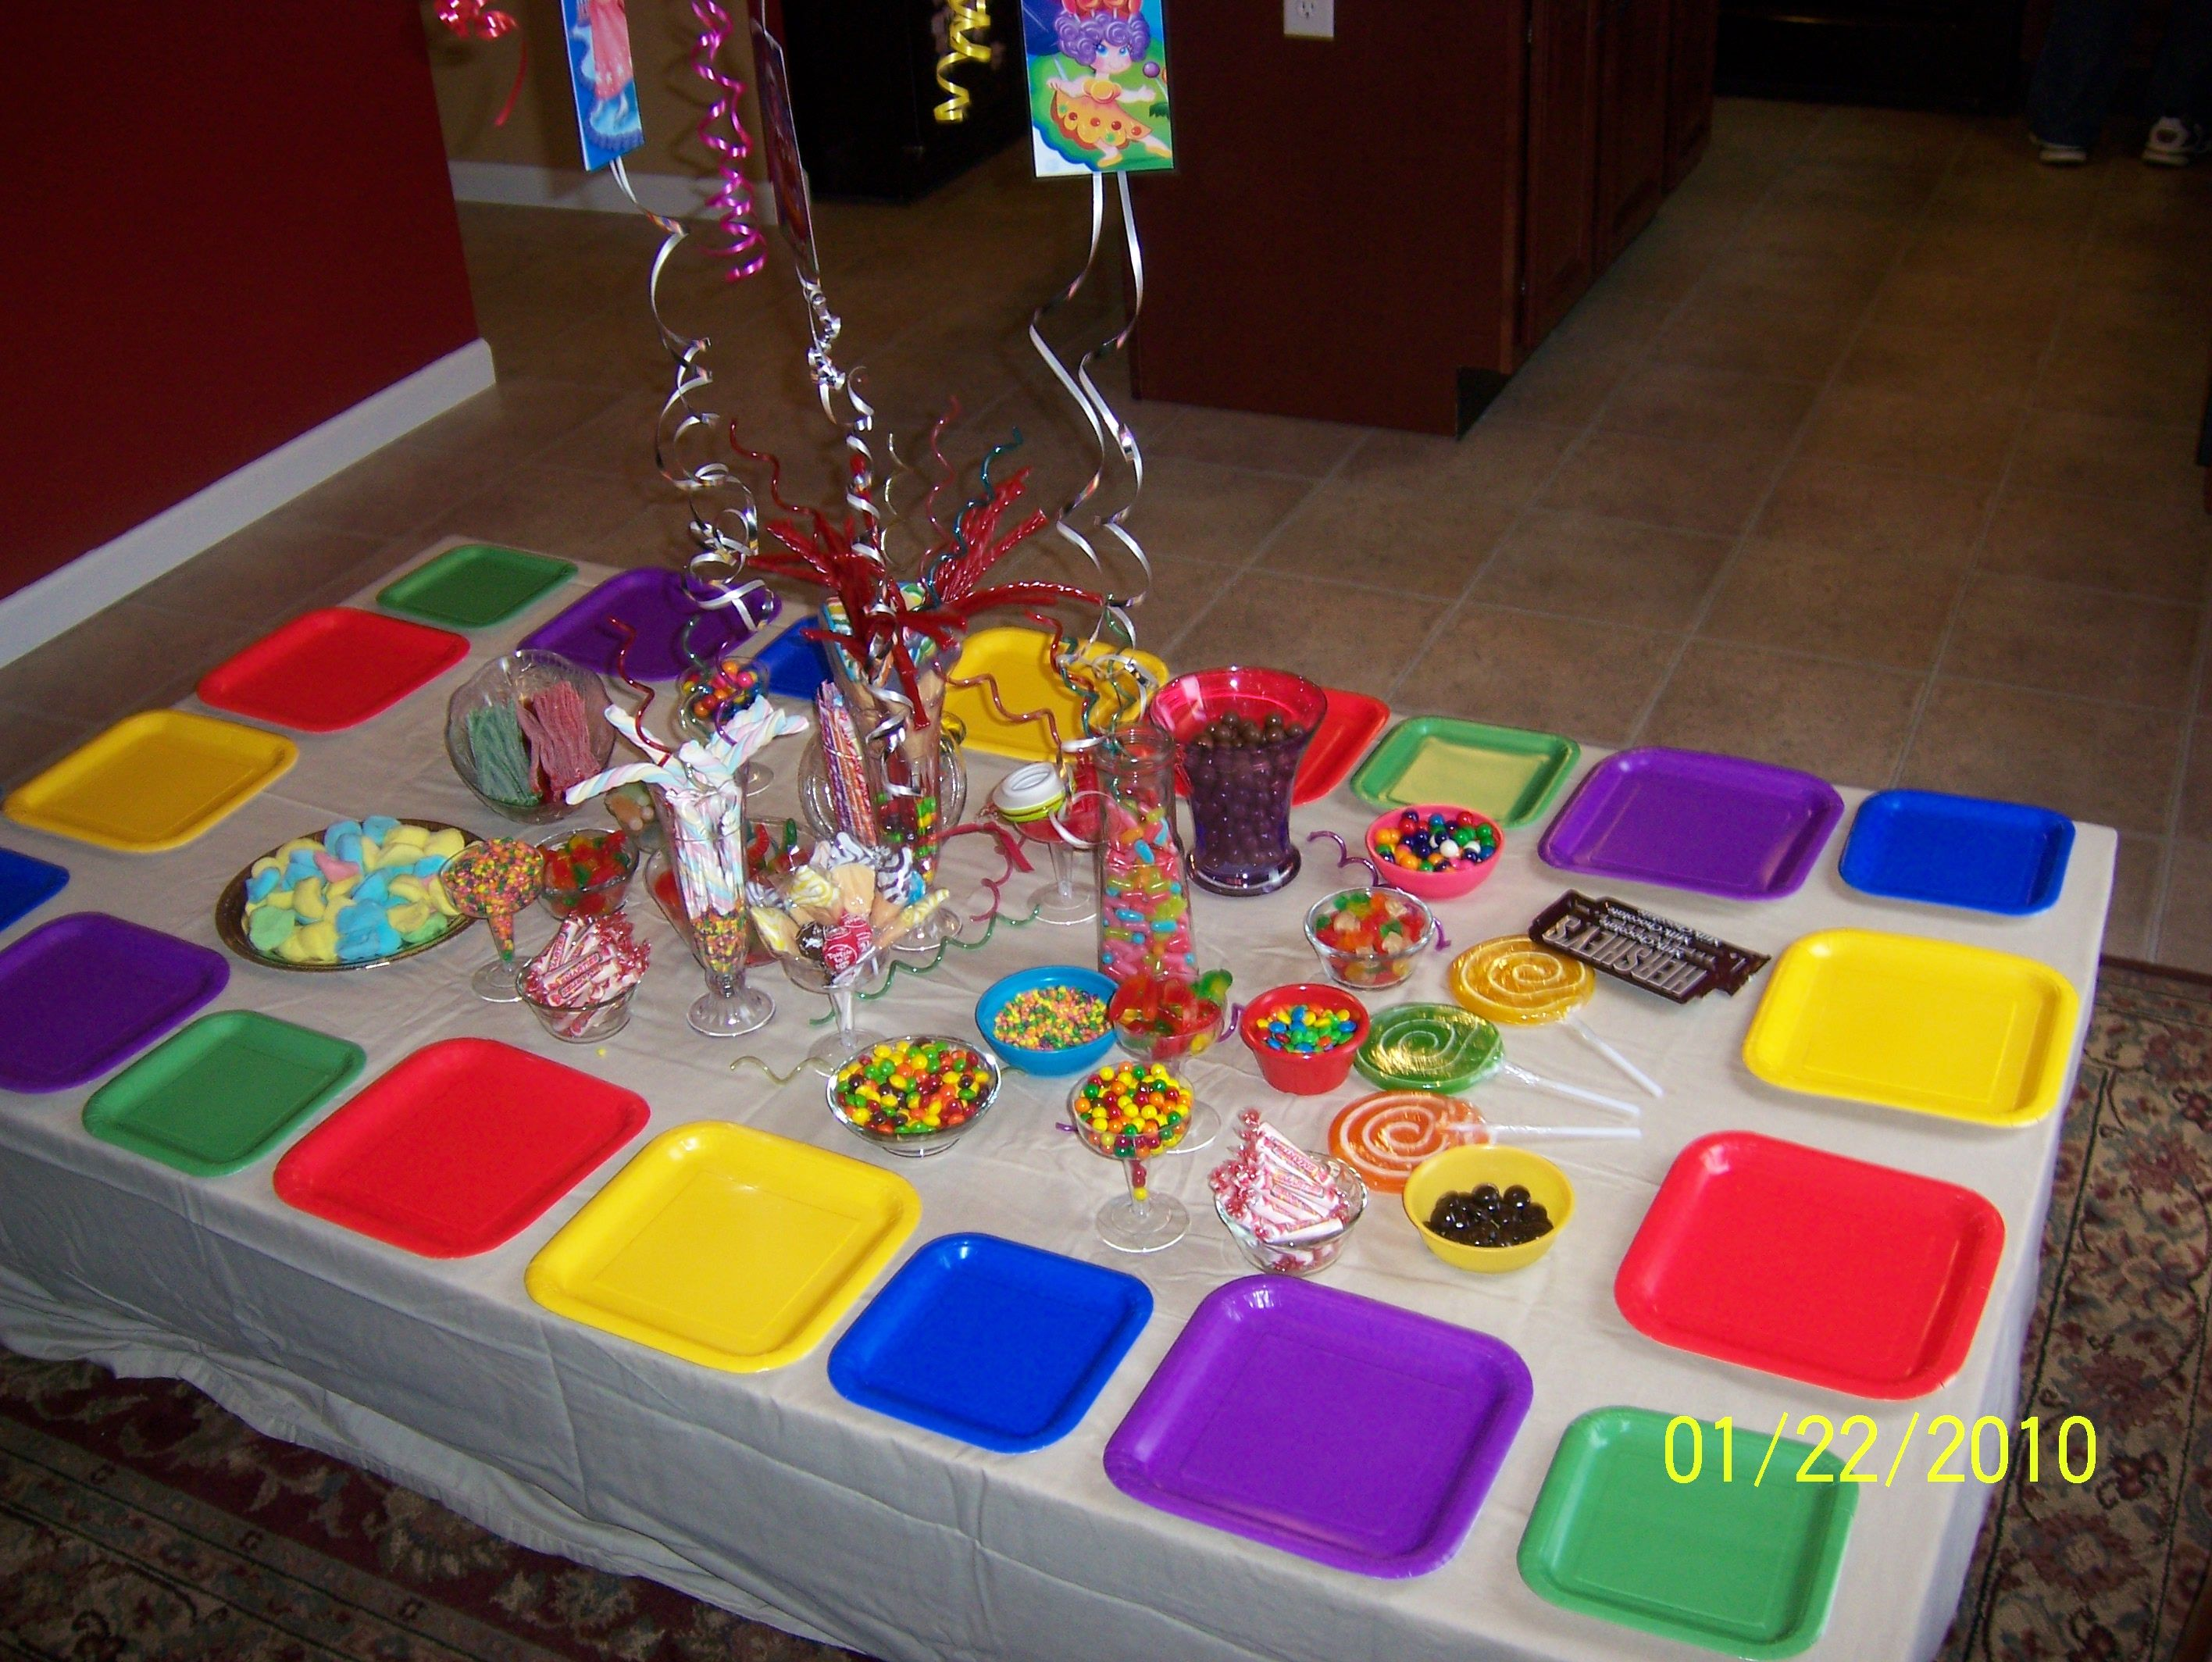 Candyland Birthday Party Table Great Idea With The Square Plates Candy Birthday Party Candy Land Birthday Party Birthday Party Tables